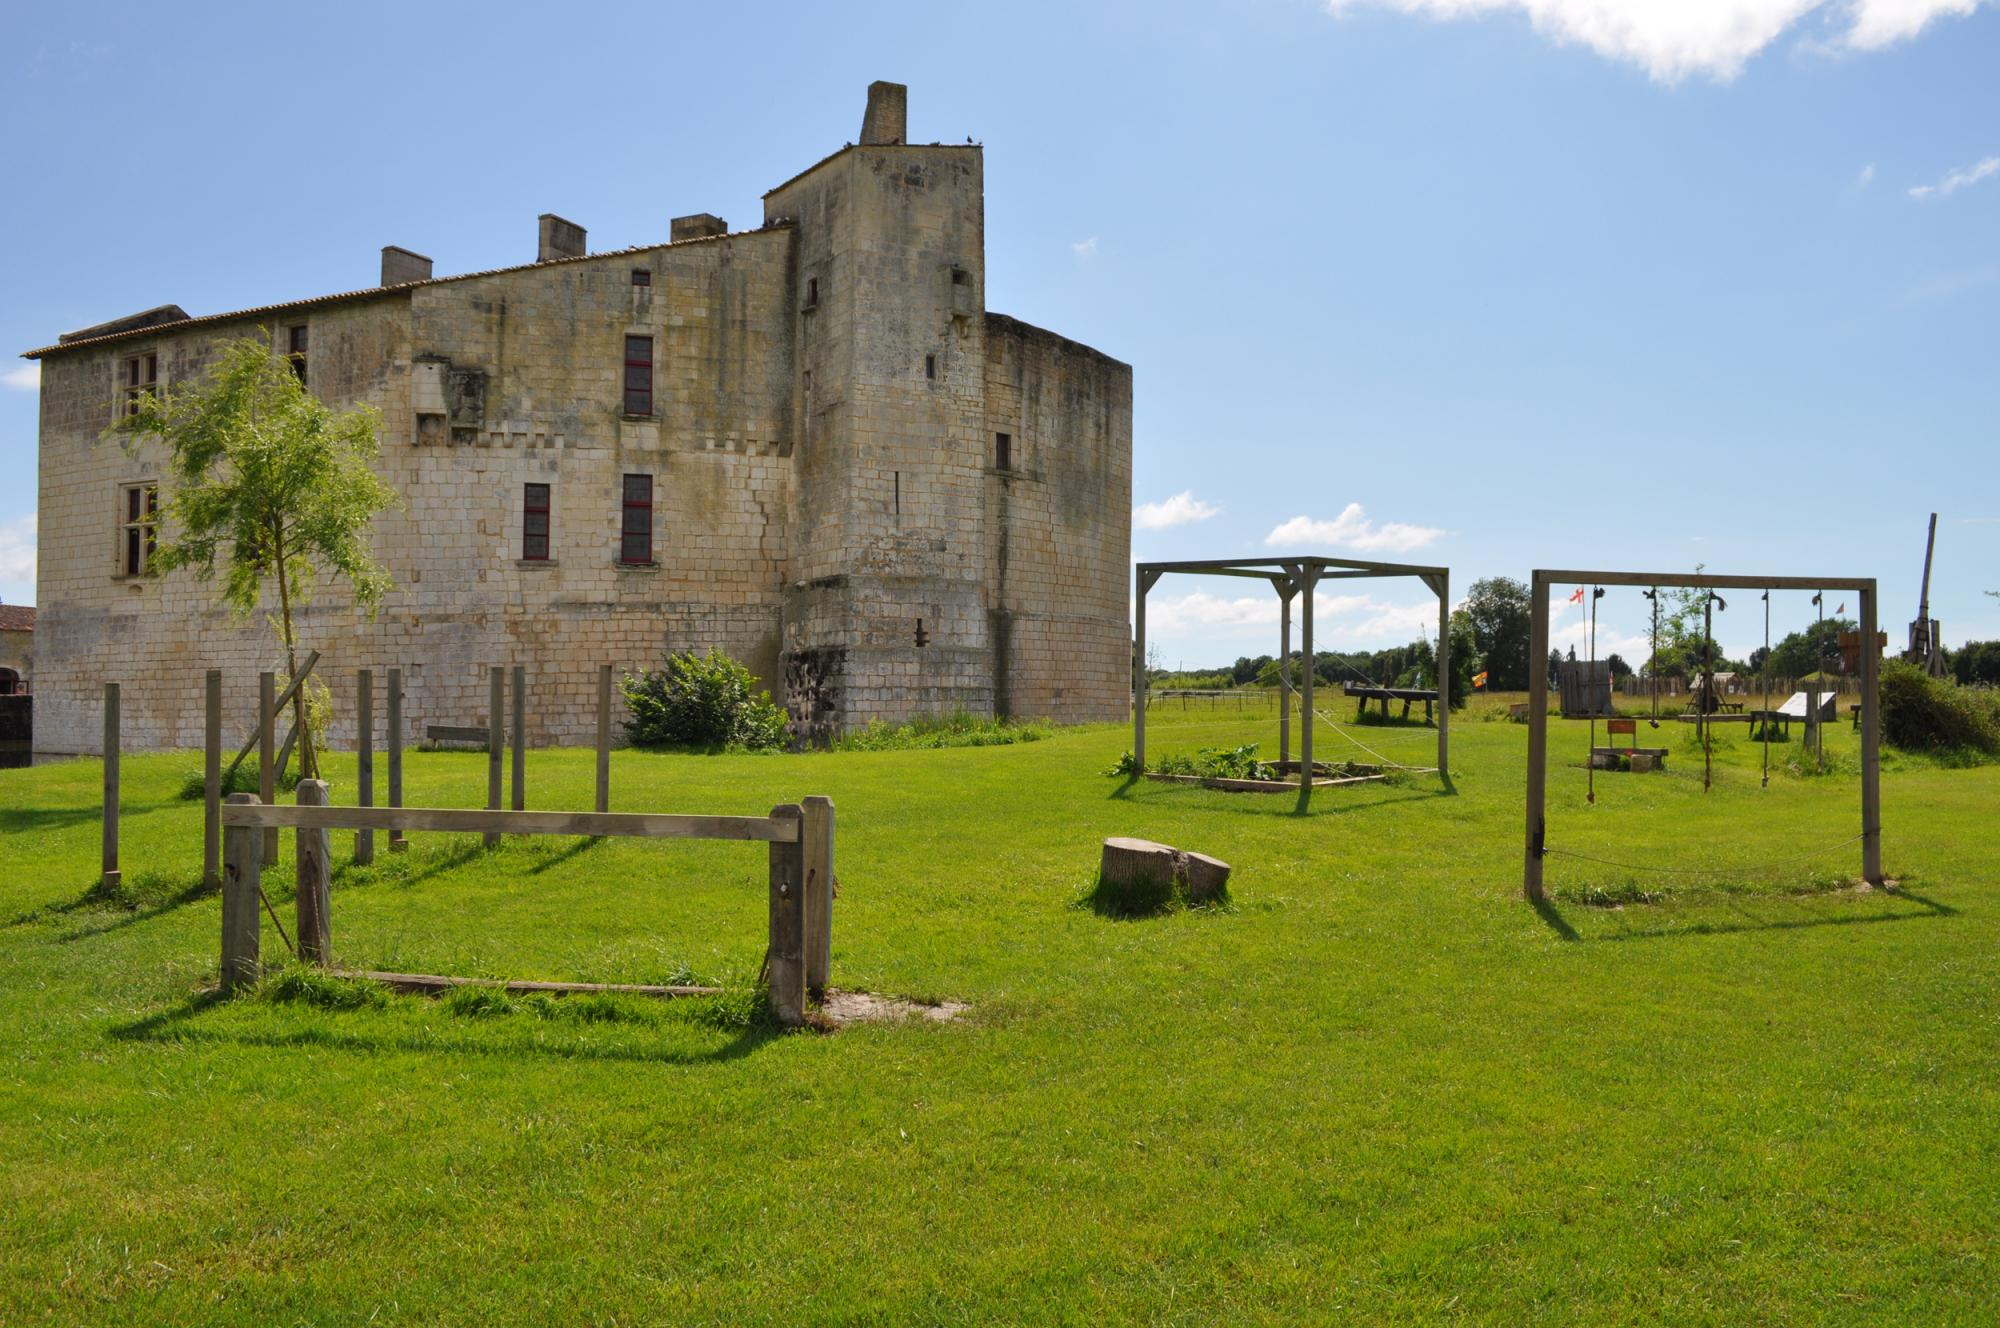 Medieval games for the whole family - Fortified castle and medieval theme park in Charente Maritime